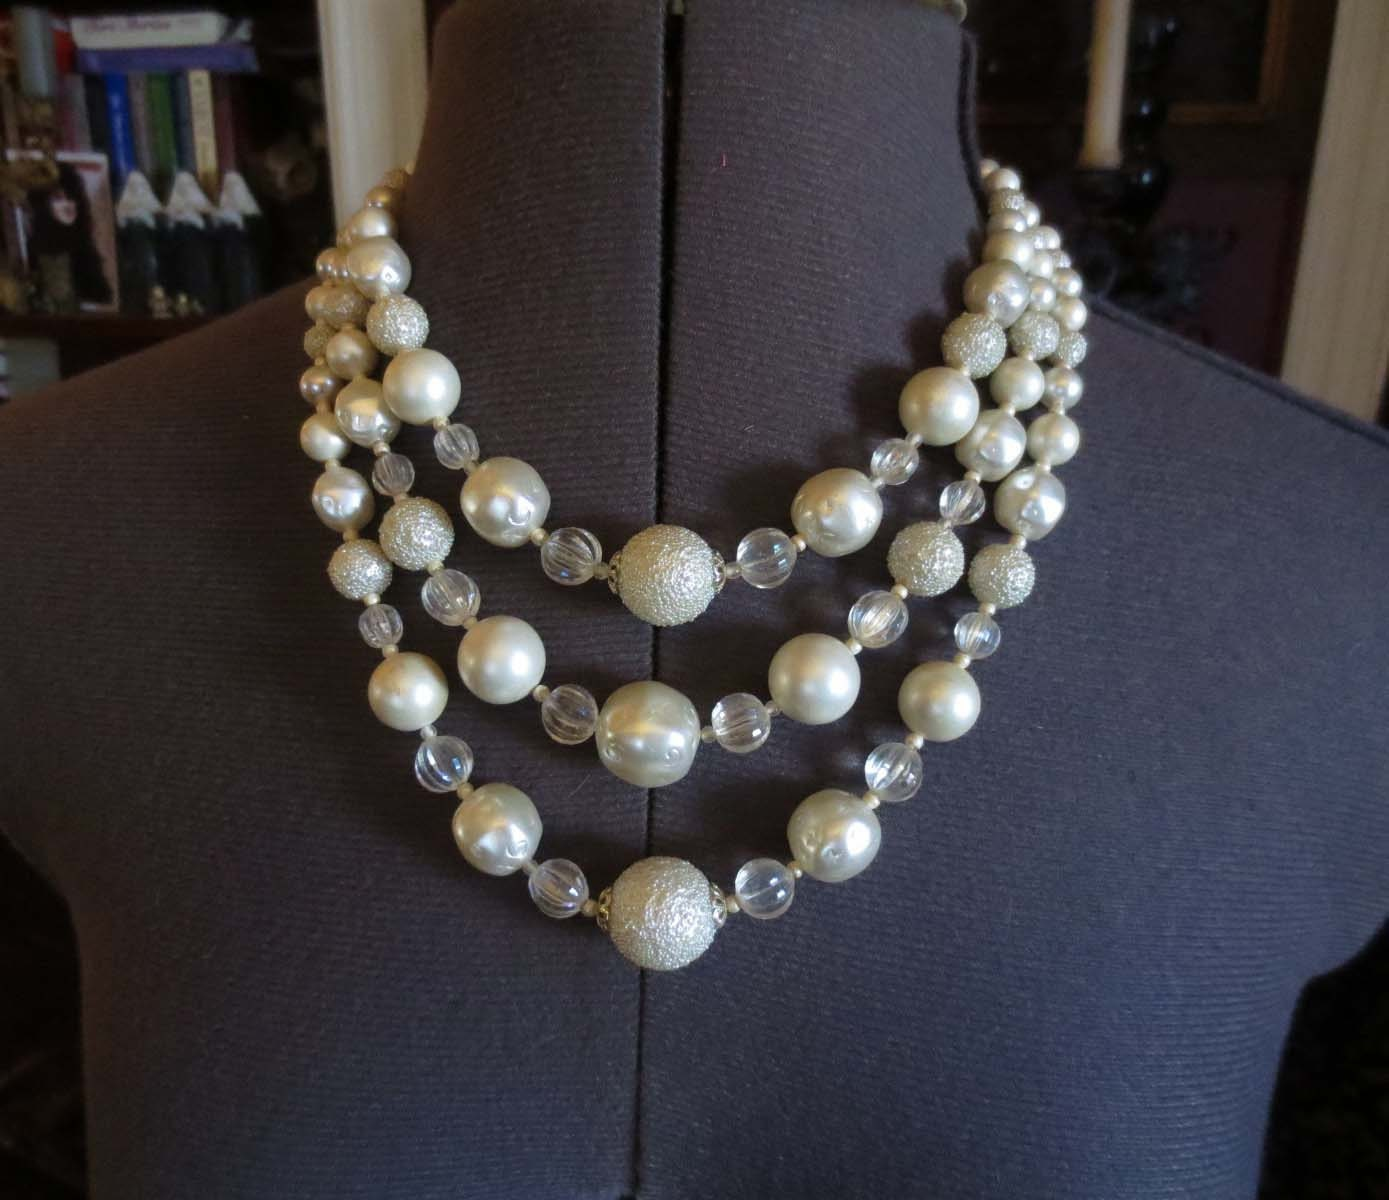 Vintage 1950's White Round Pearl Beads and Baubles Necklace